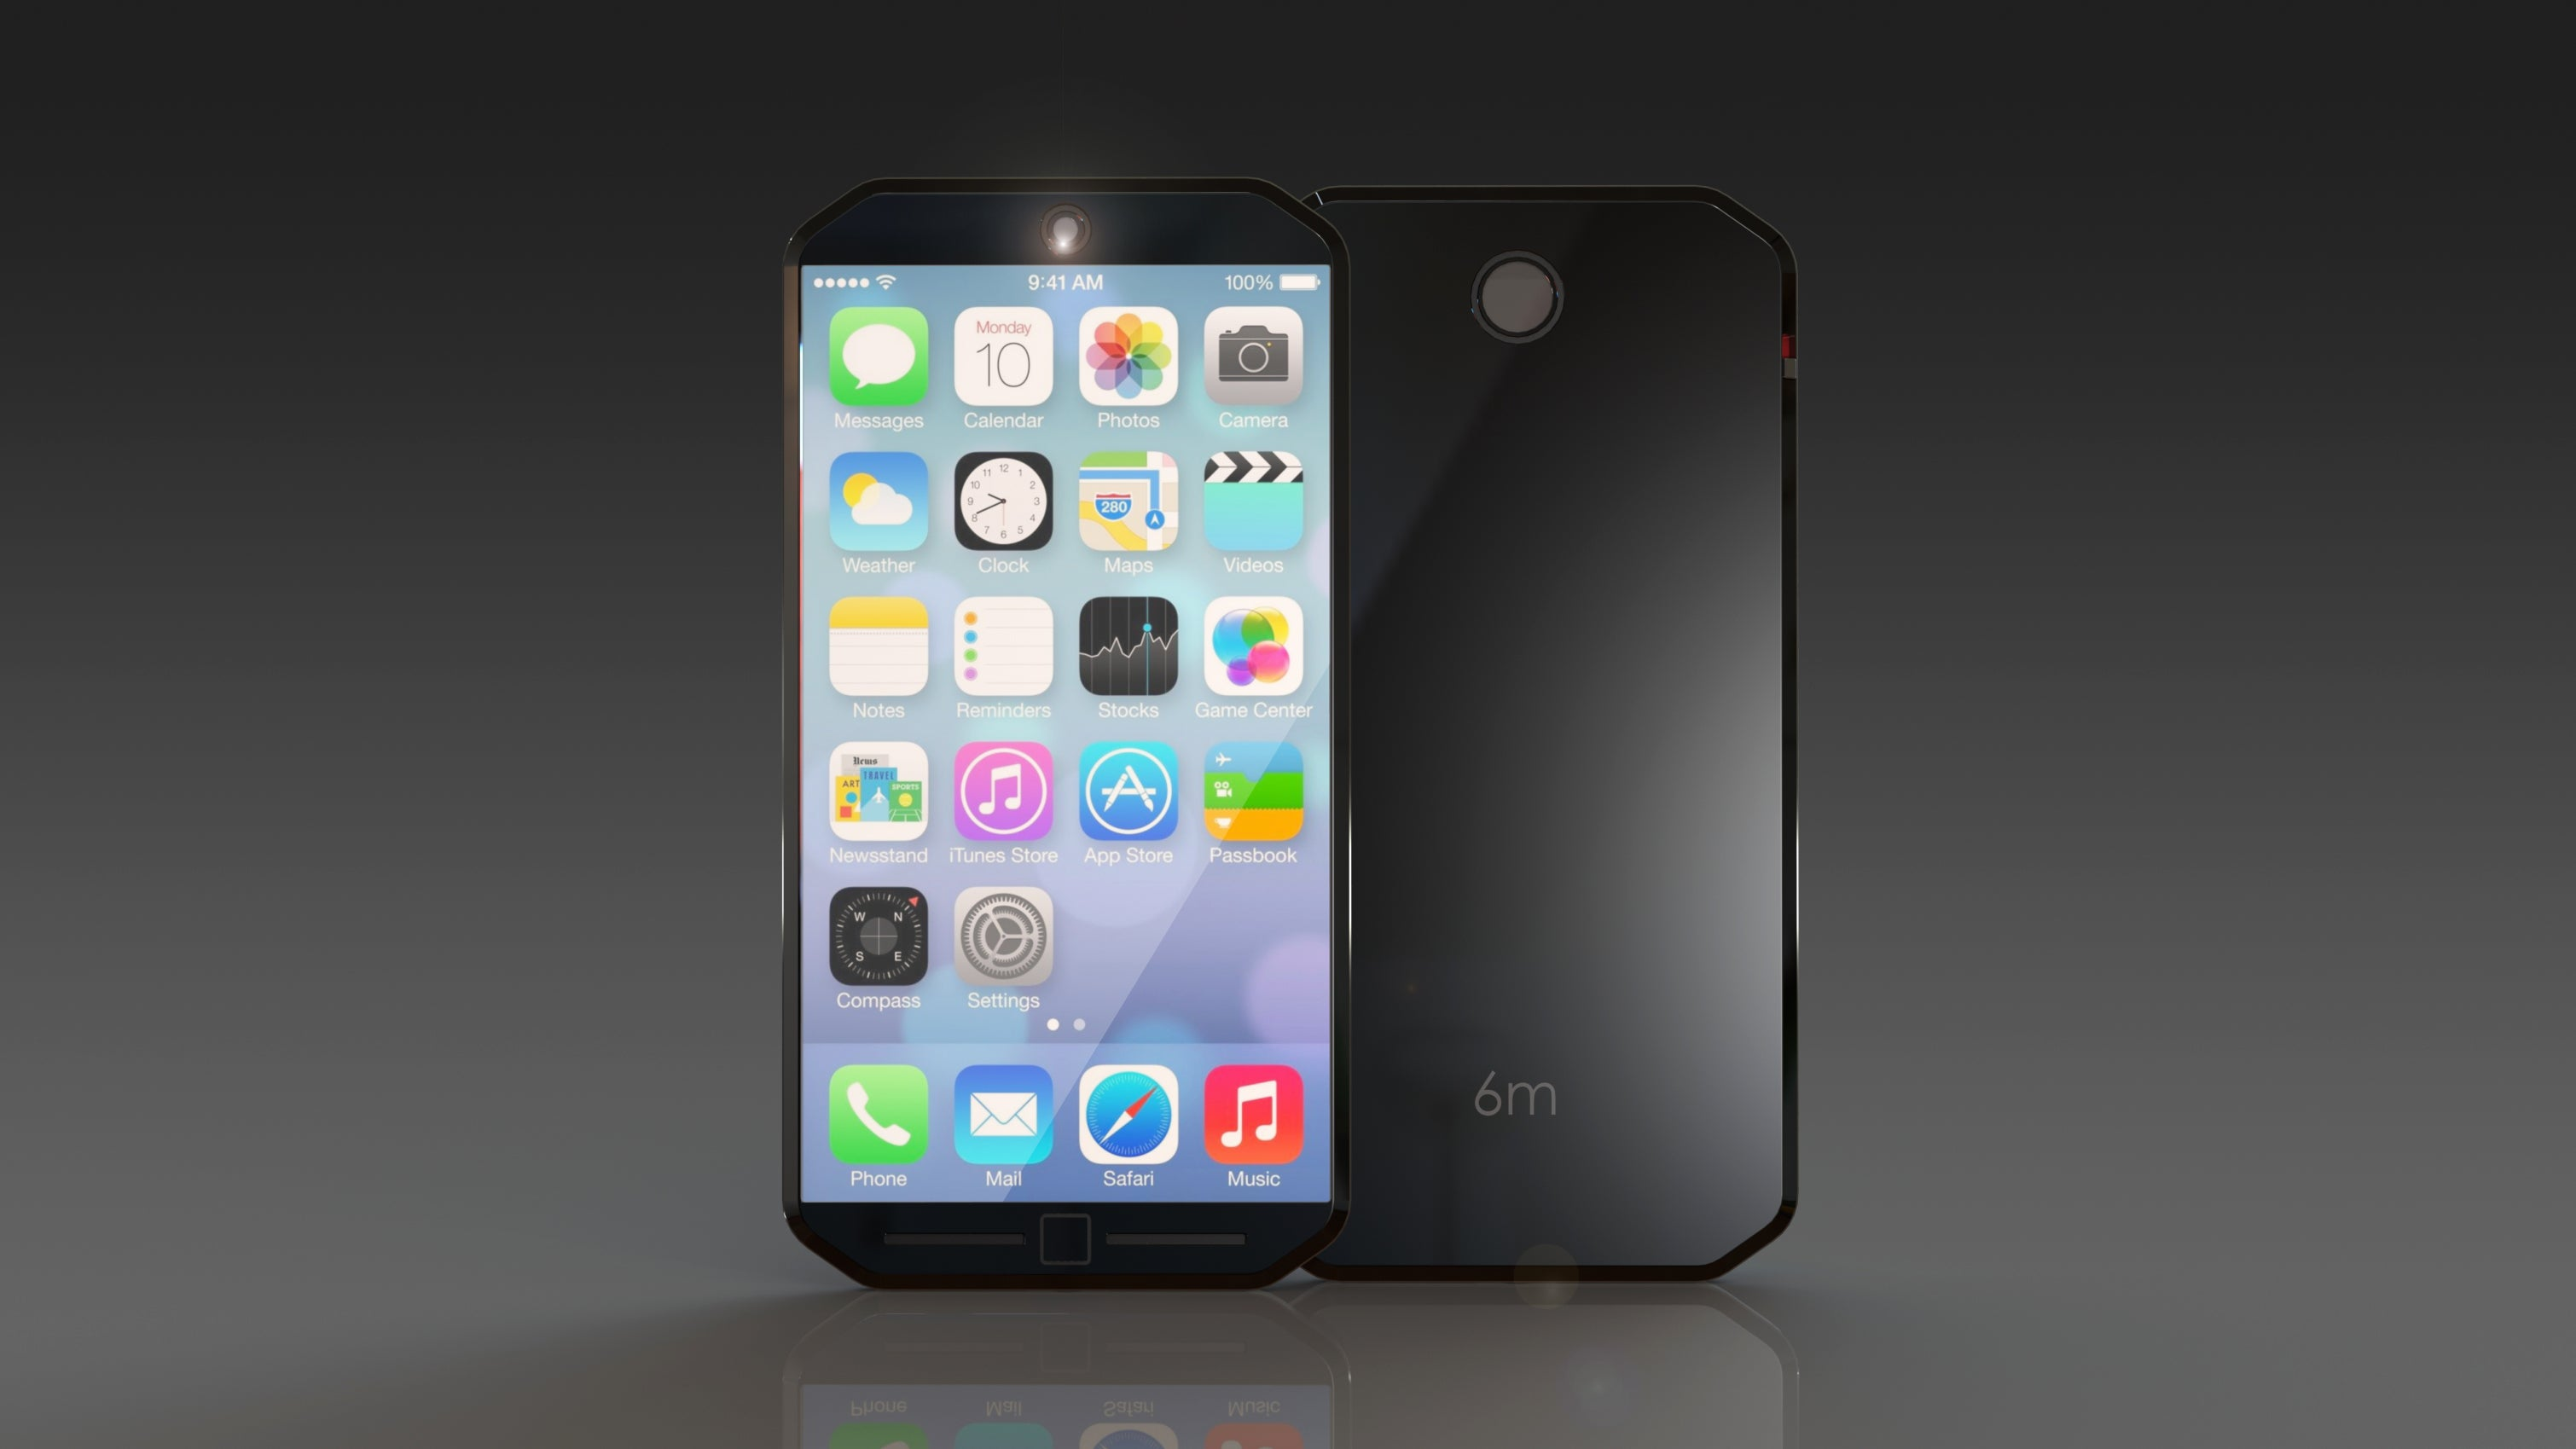 iPhone 6 m Concept Front and Back View Black